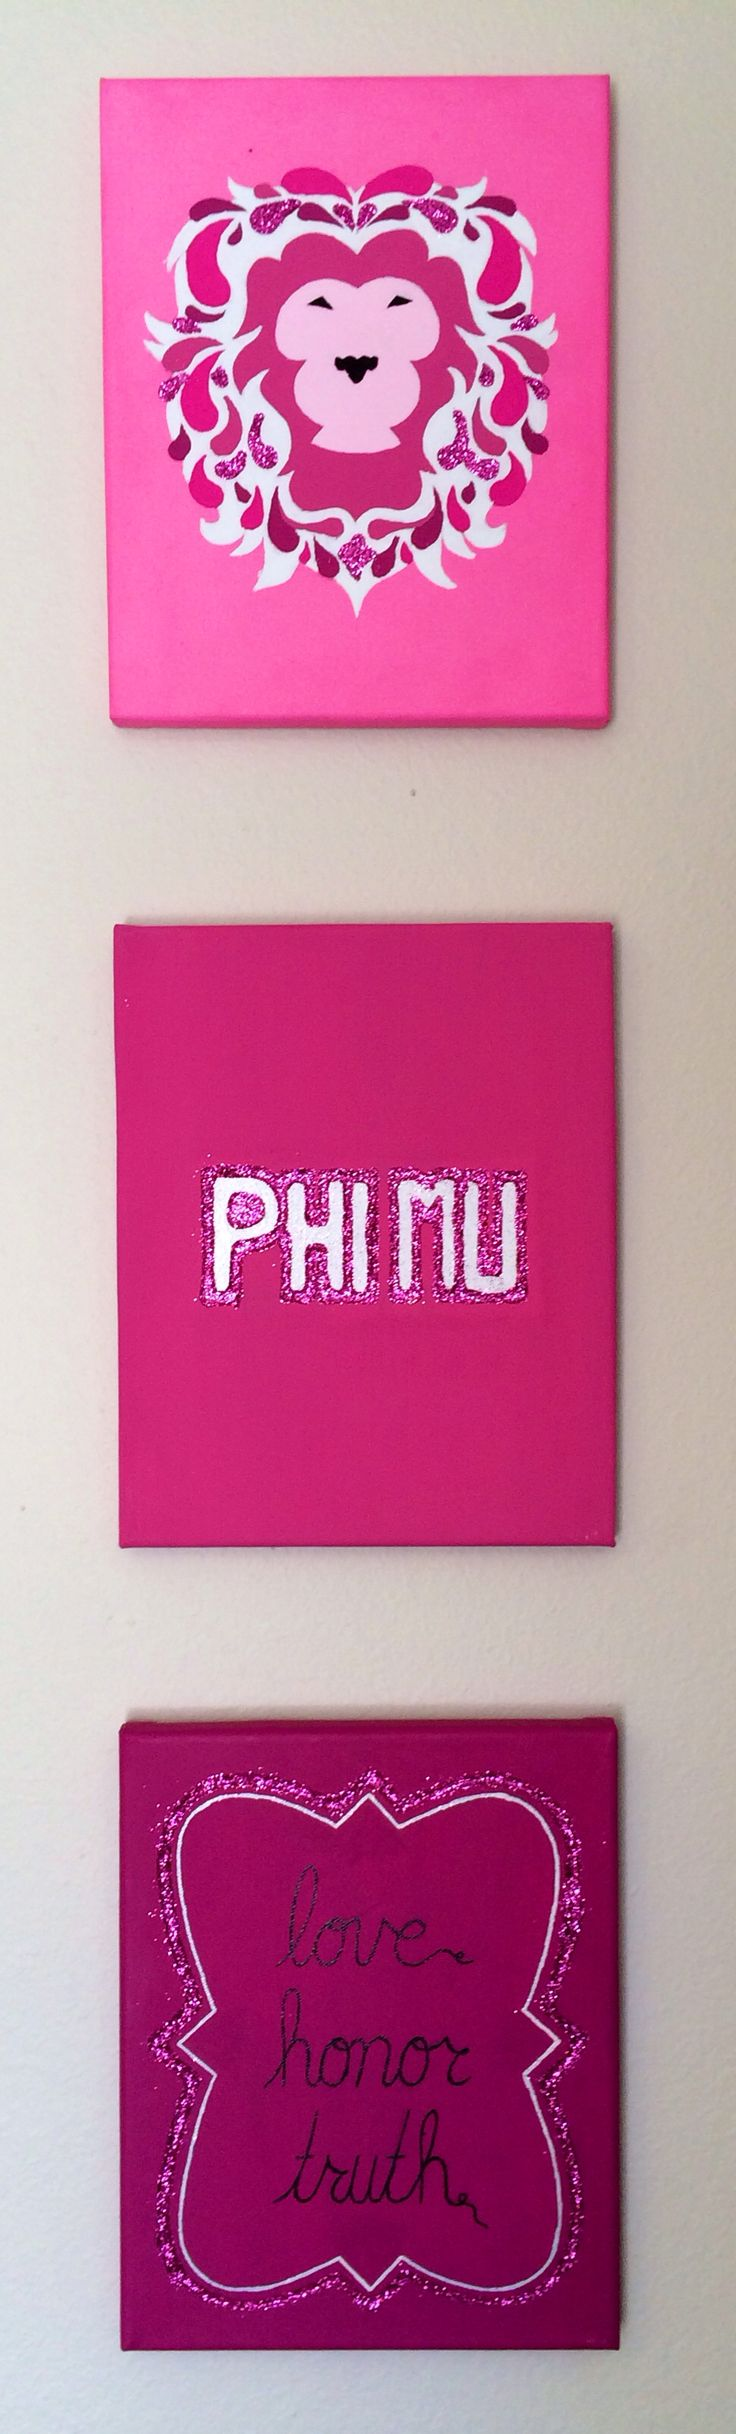 Ideas for Phi Mu canvases!